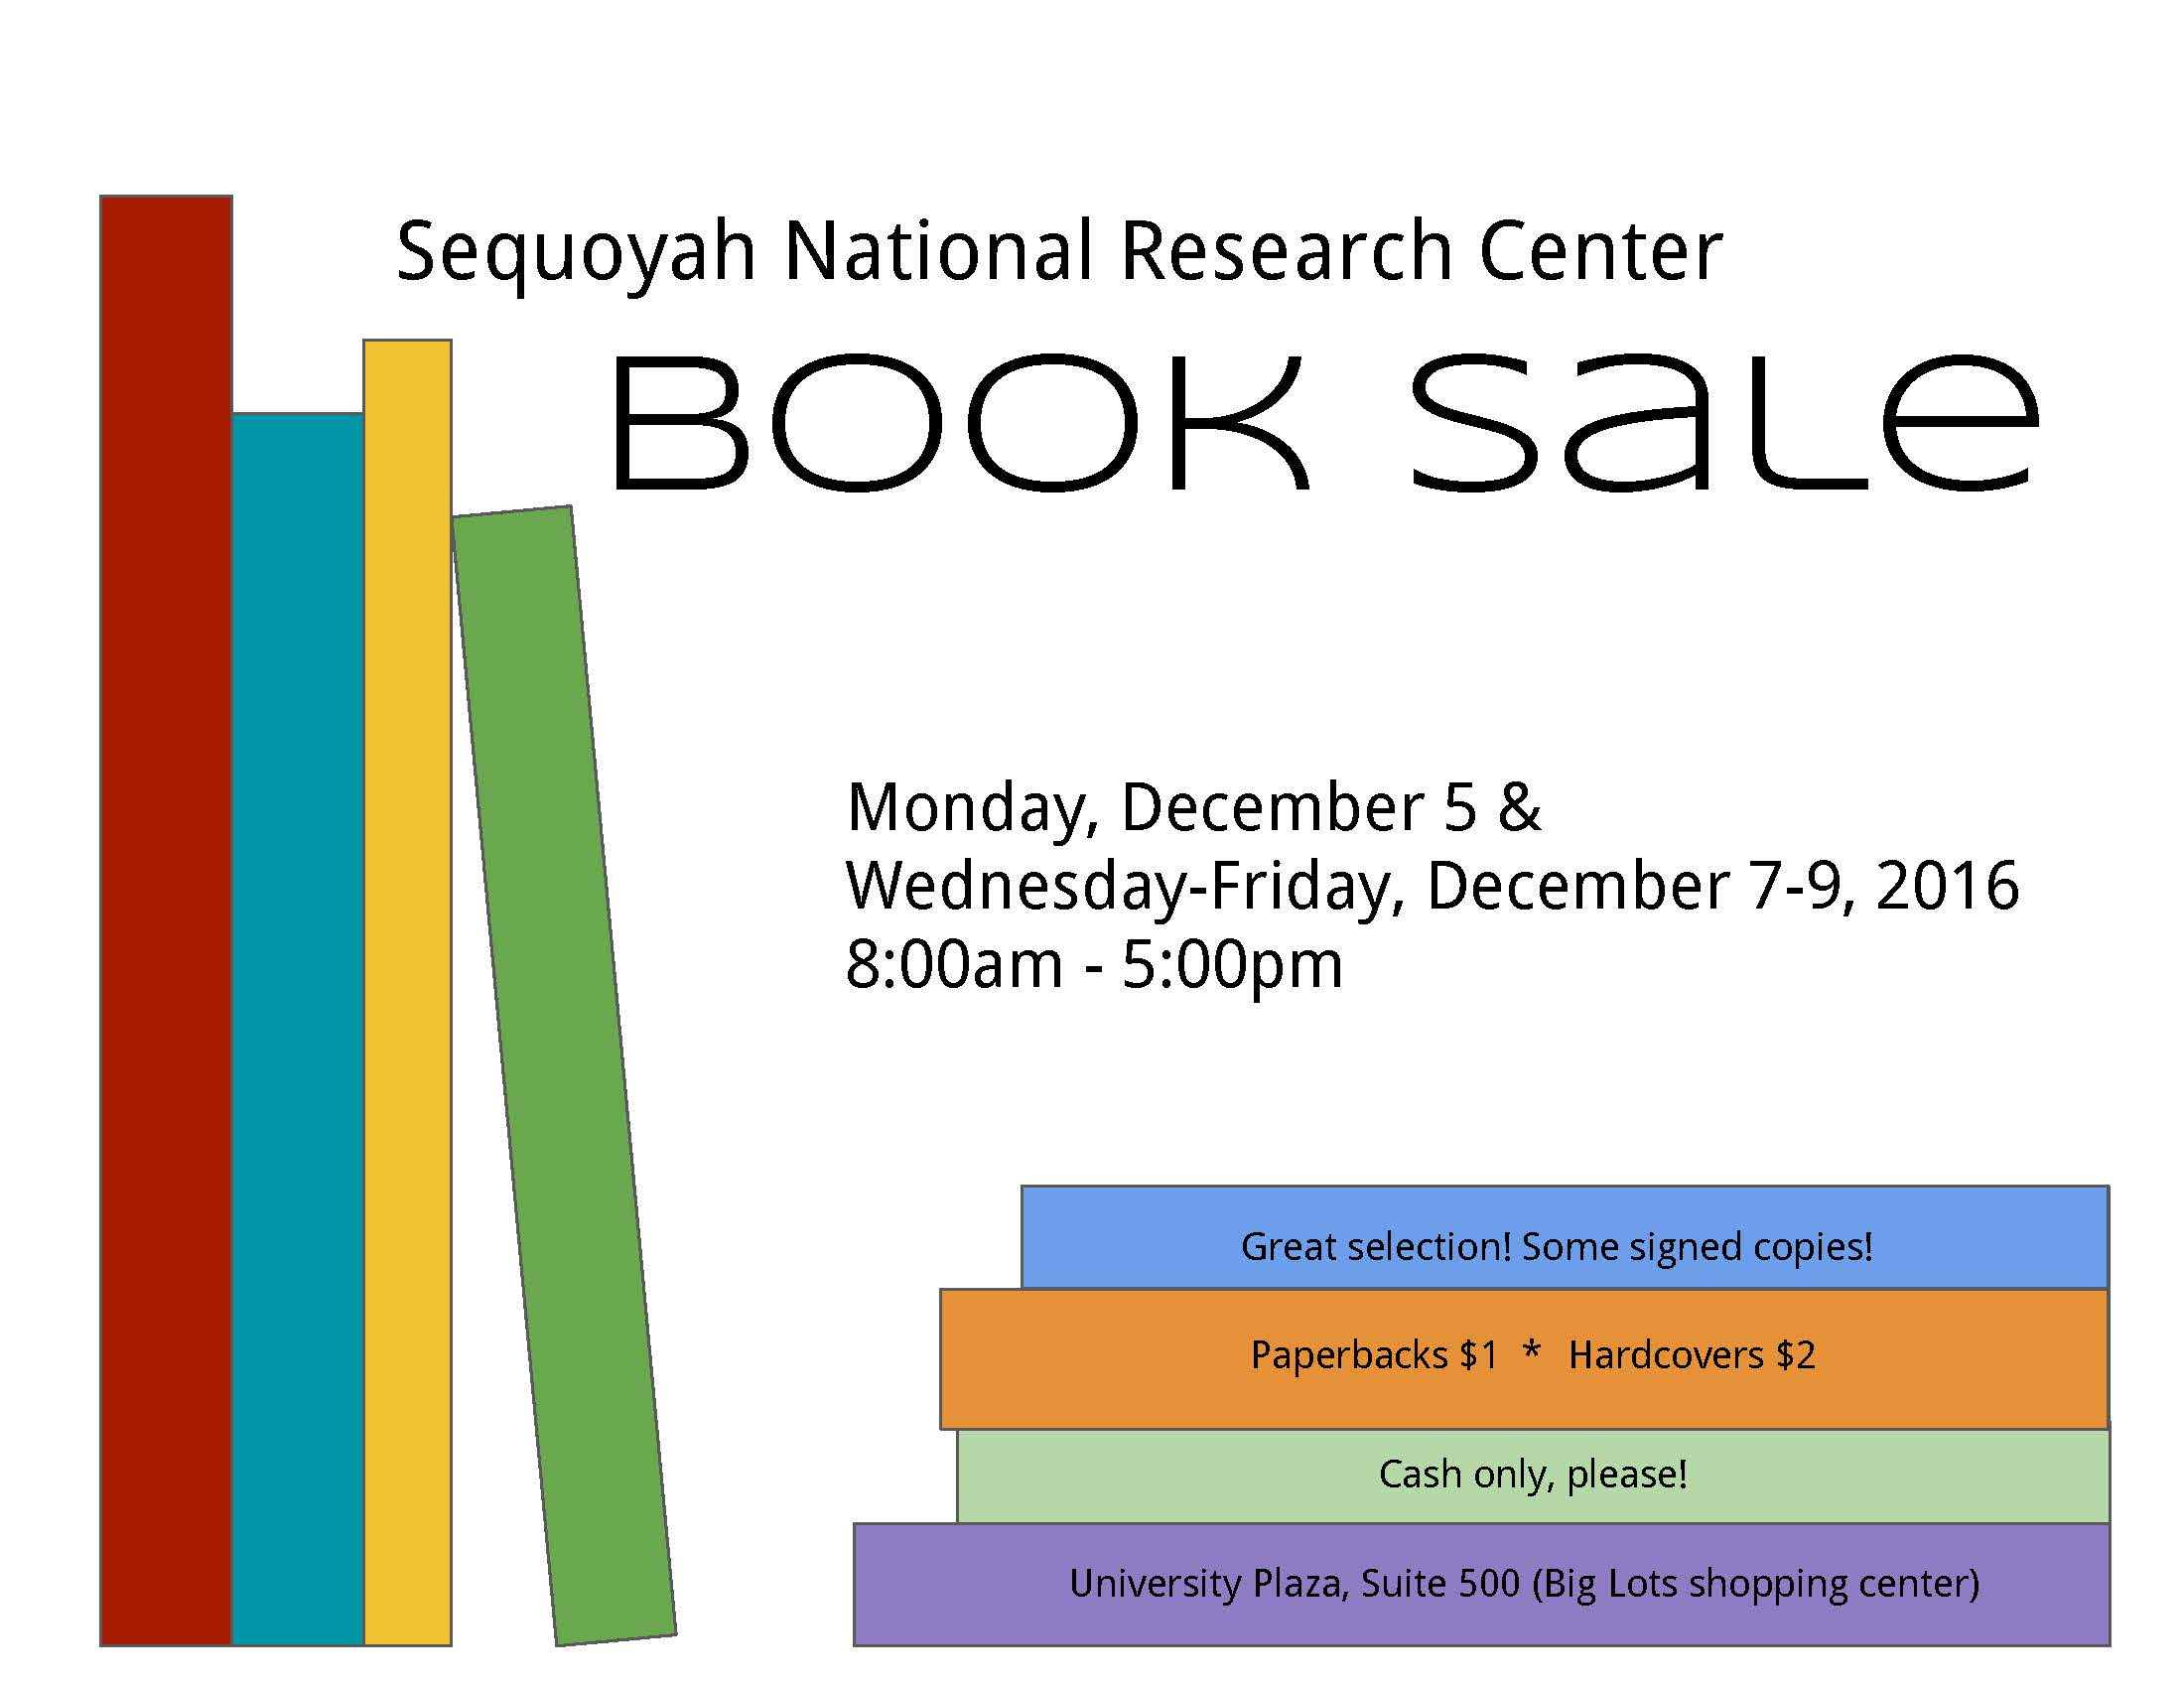 Book Sale at SNRC